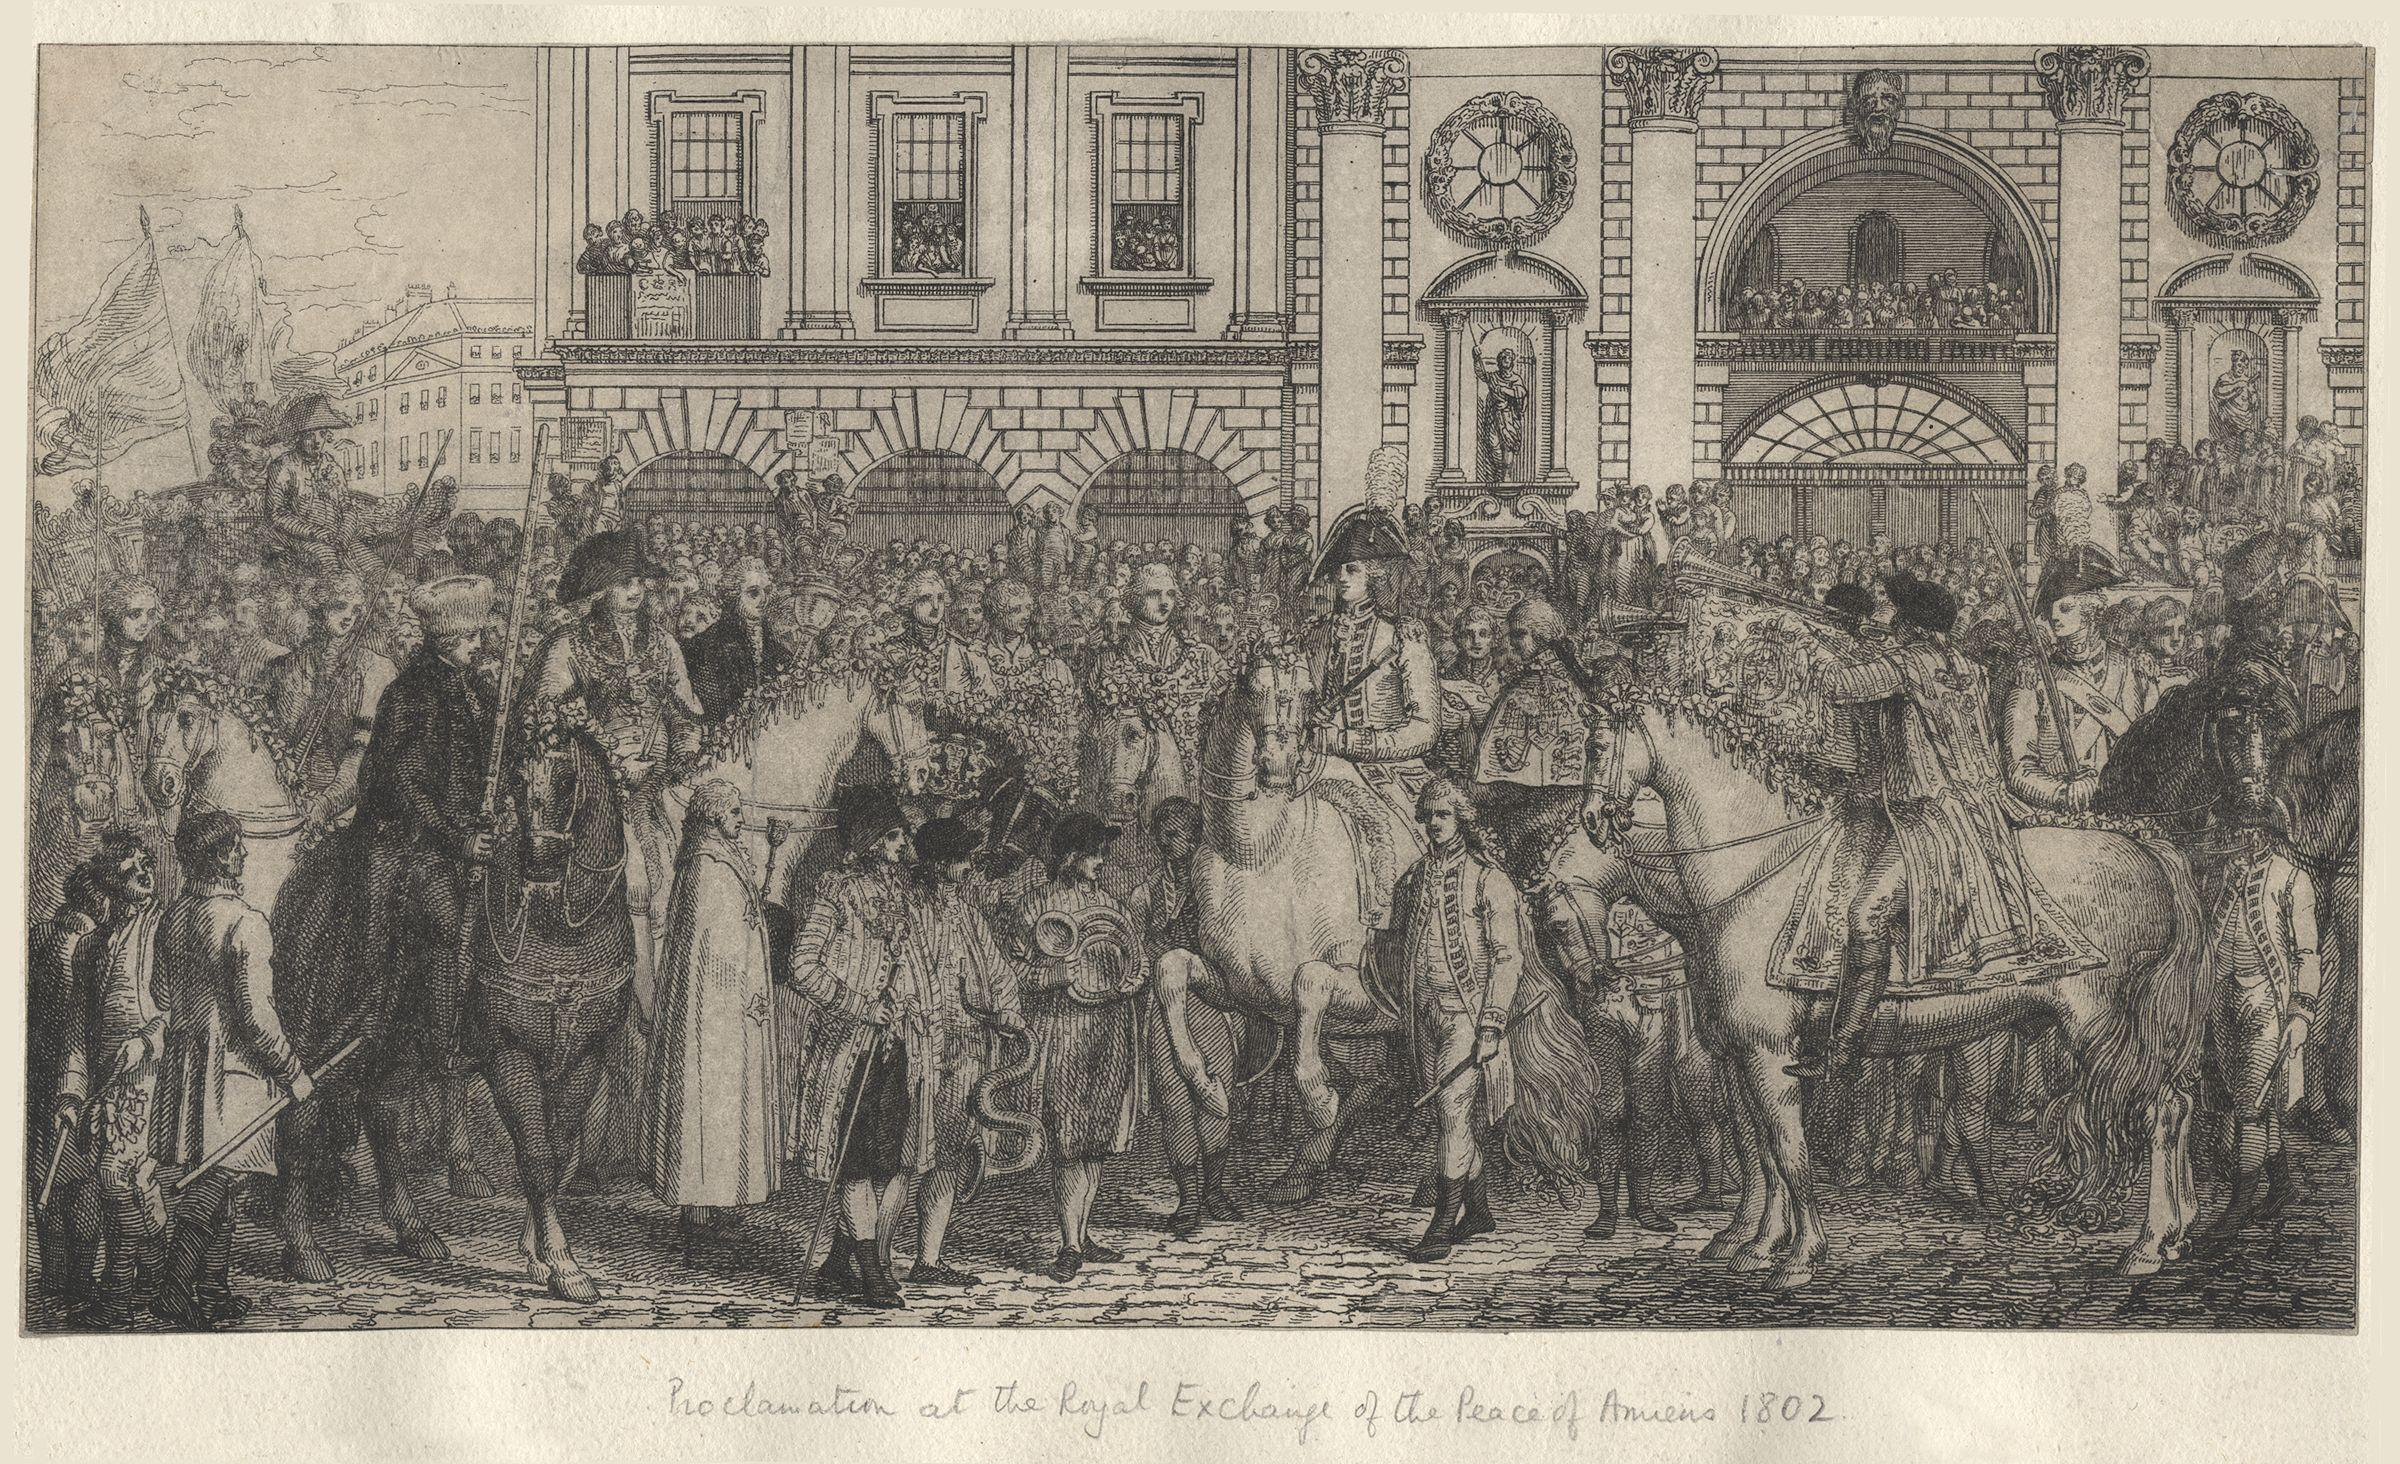 File:Proclamation at the Royal Exchange of the Peace of Amiens, 1802 by  Peltro